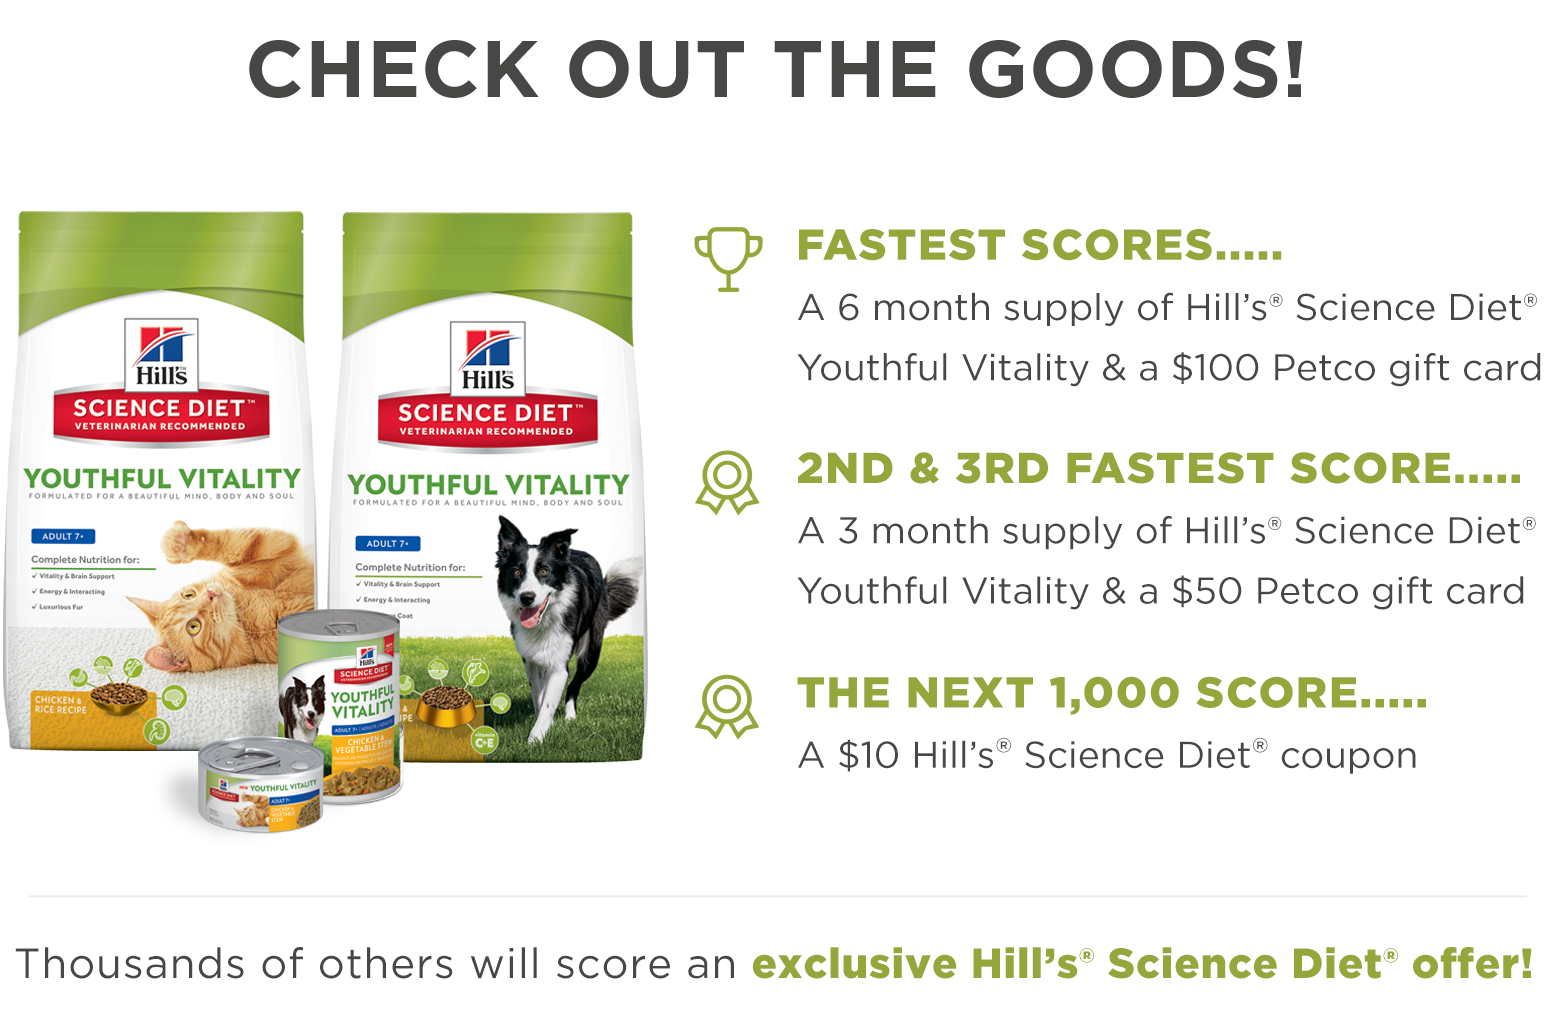 FREE Hill's Science Diet Quikly